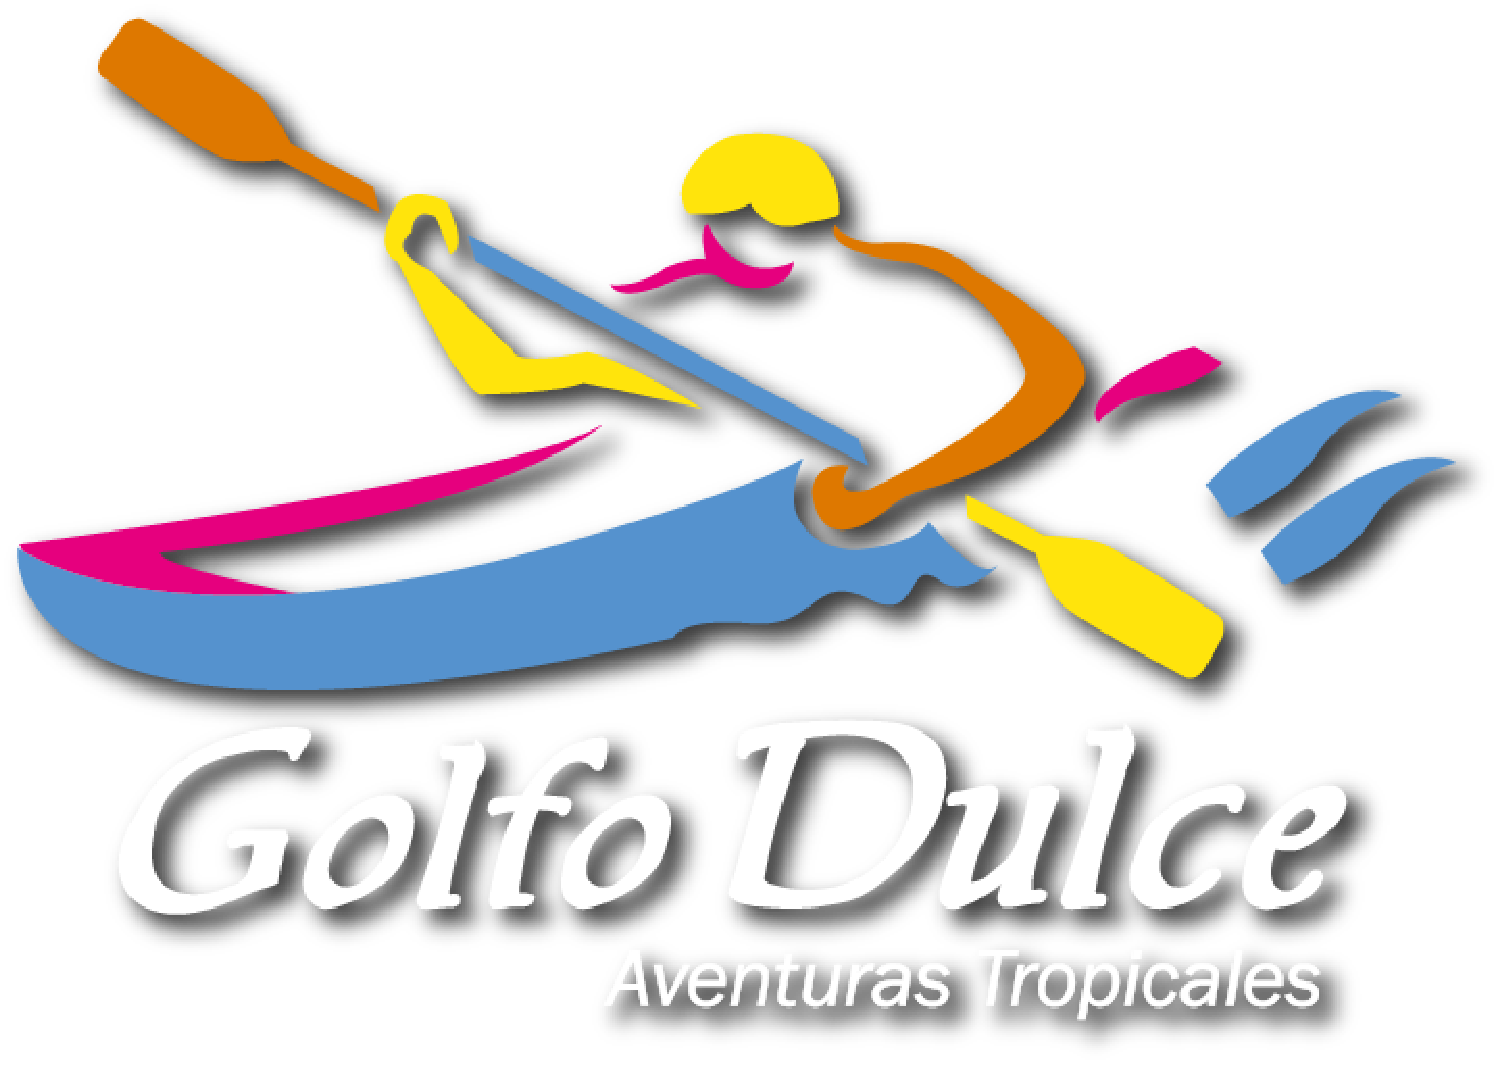 And kayak tour aventuras. Sunset clipart dolphins